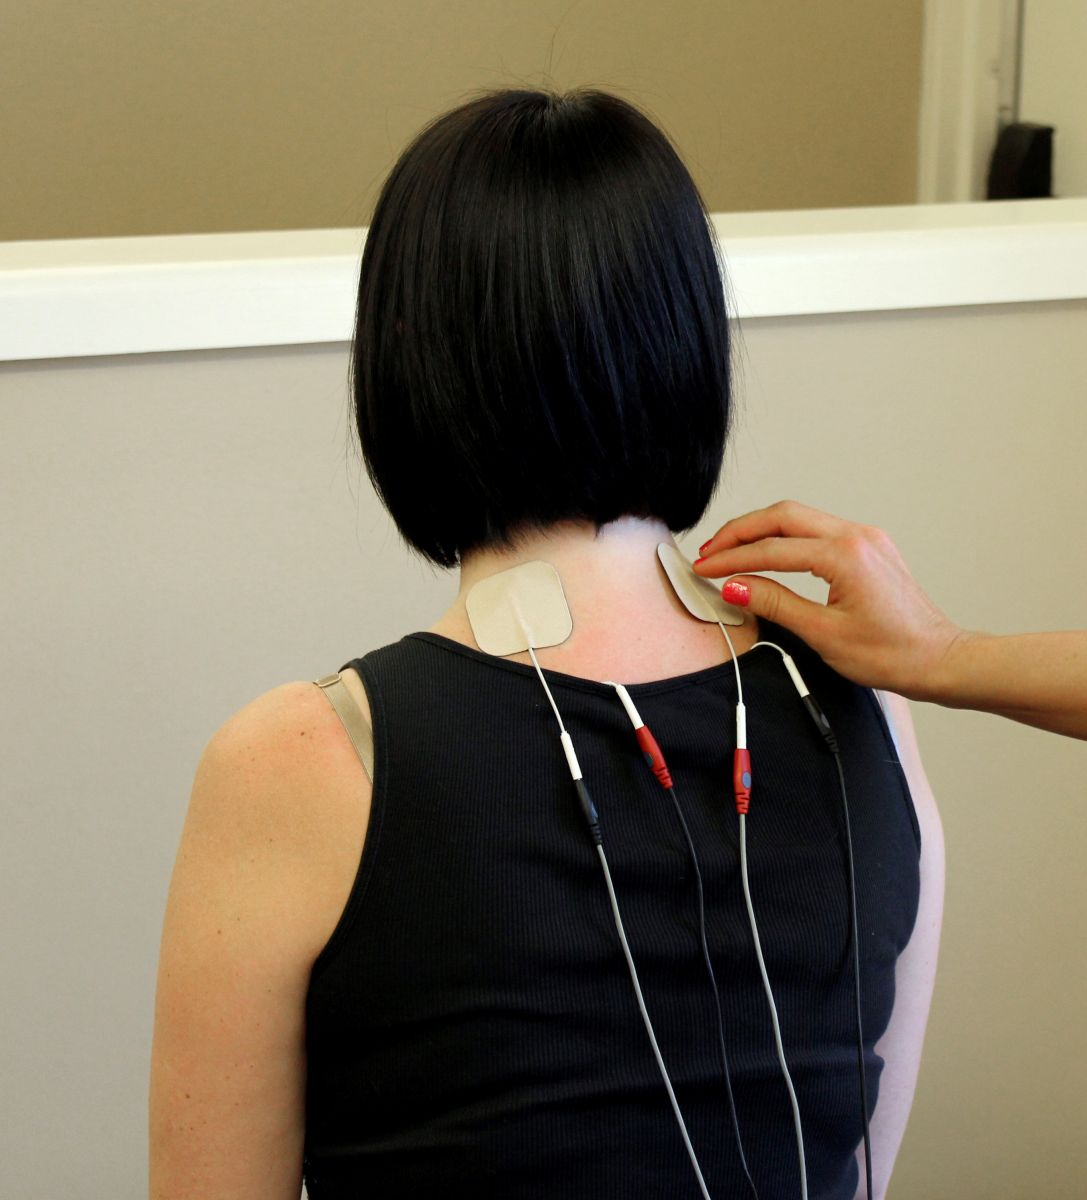 Electrical Muscle Stimulation Chiropractor In Brunswick